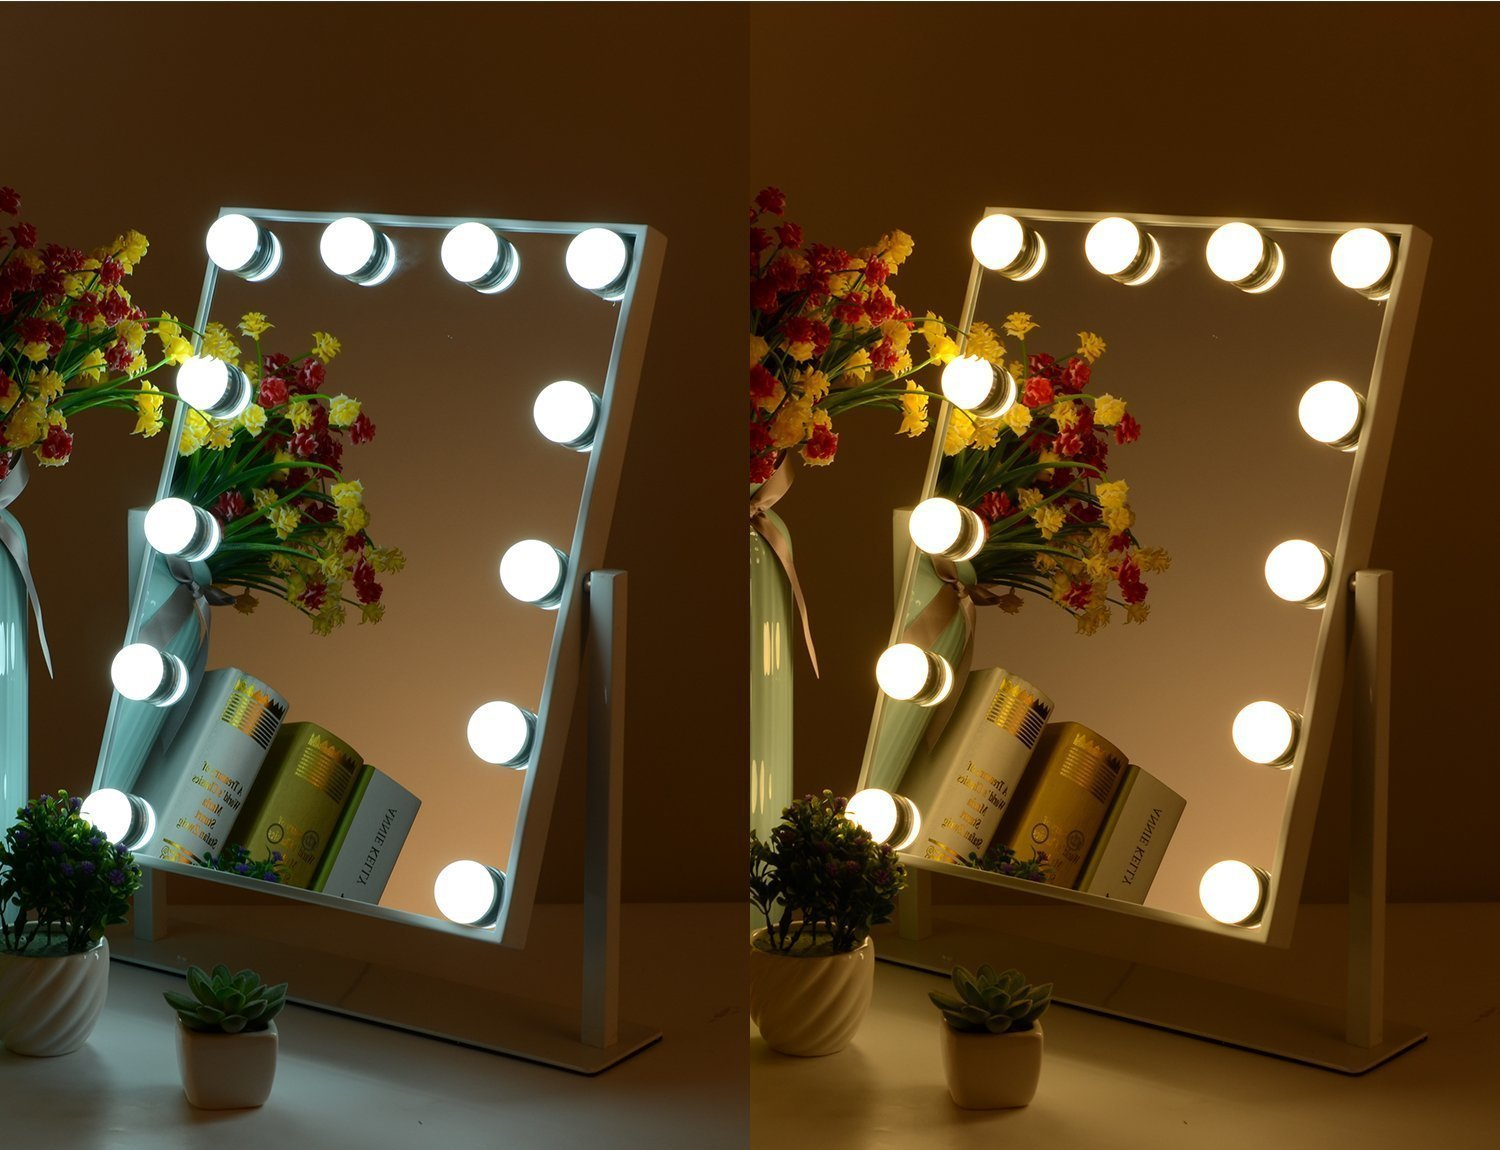 Makeup Vanity Mirror With Lighted Bulbs